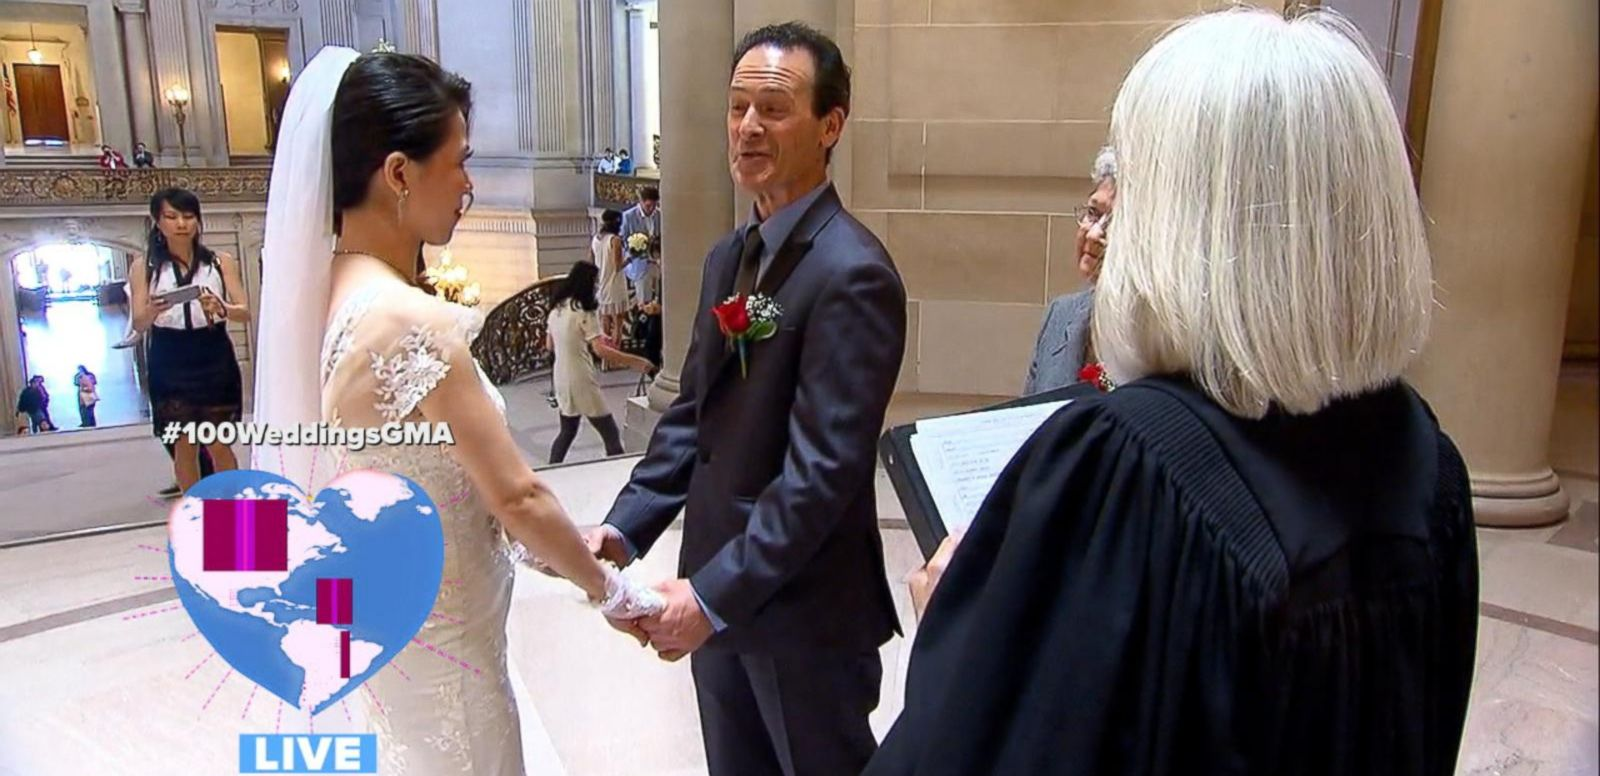 VIDEO: 'GMA' Wide World of Weddings: All the Best Moments From the 24-Hour Livestream